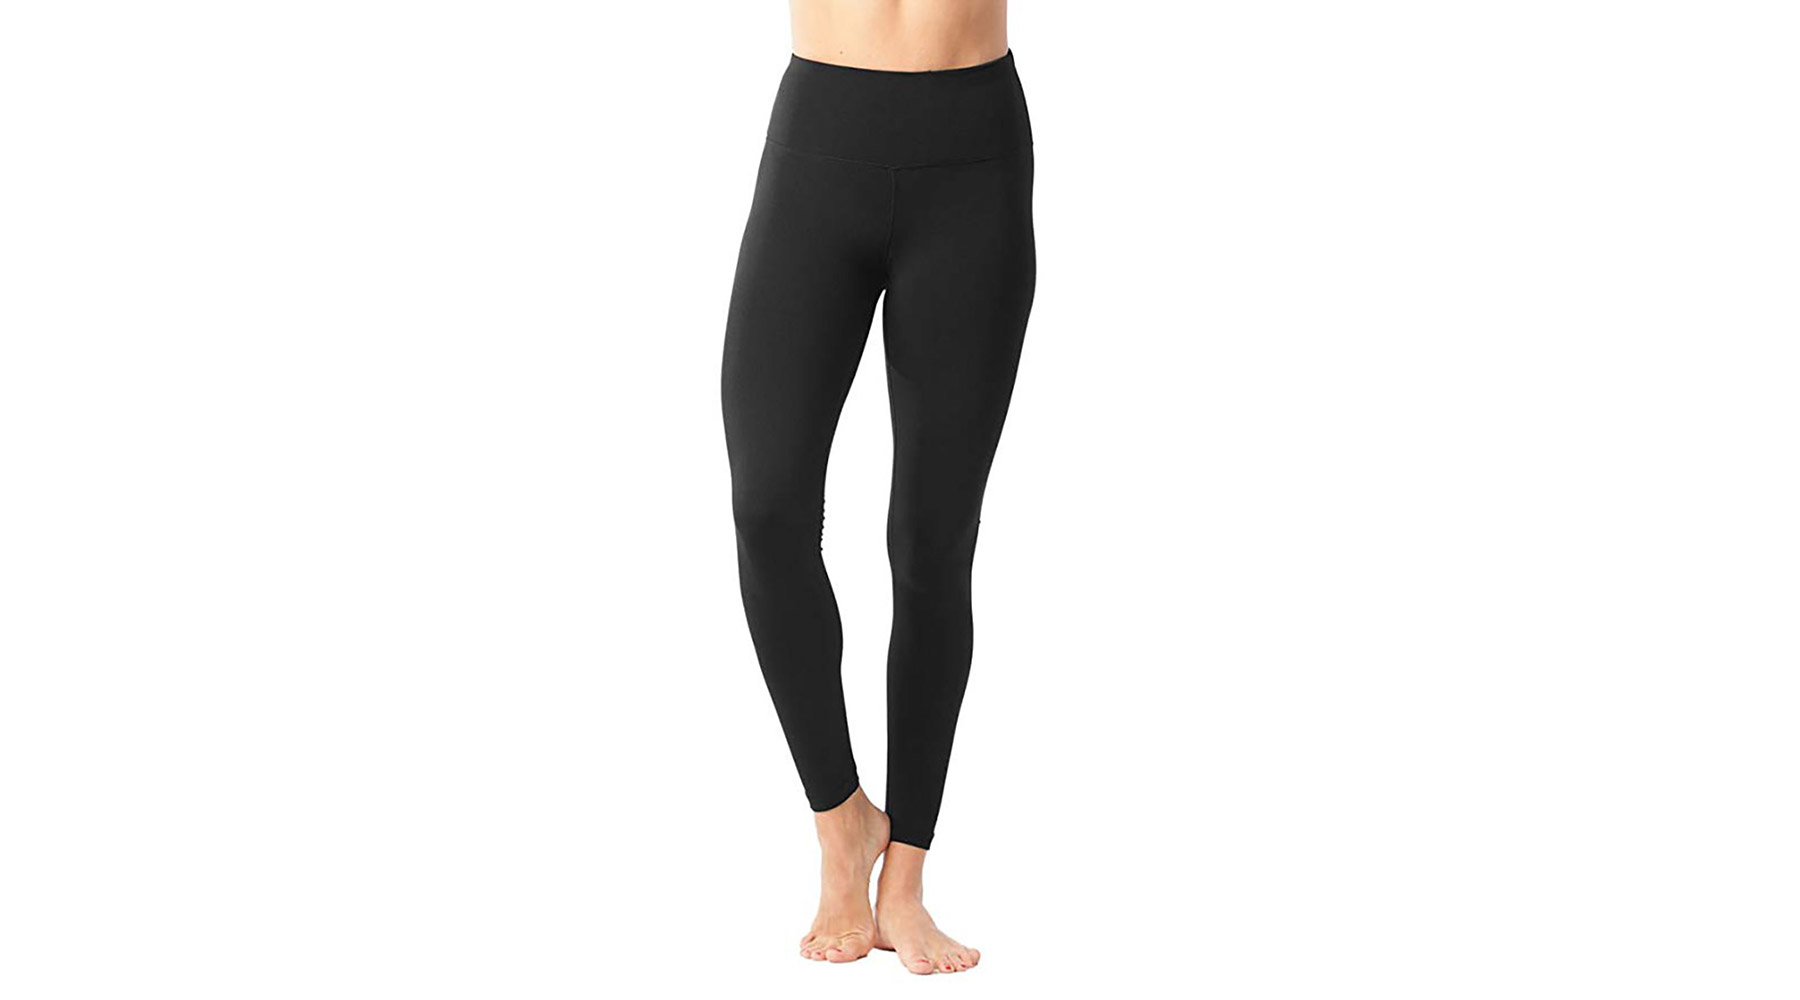 a693f3c296a47 7 Best Yoga Pants on Amazon, According to Customers | Real Simple